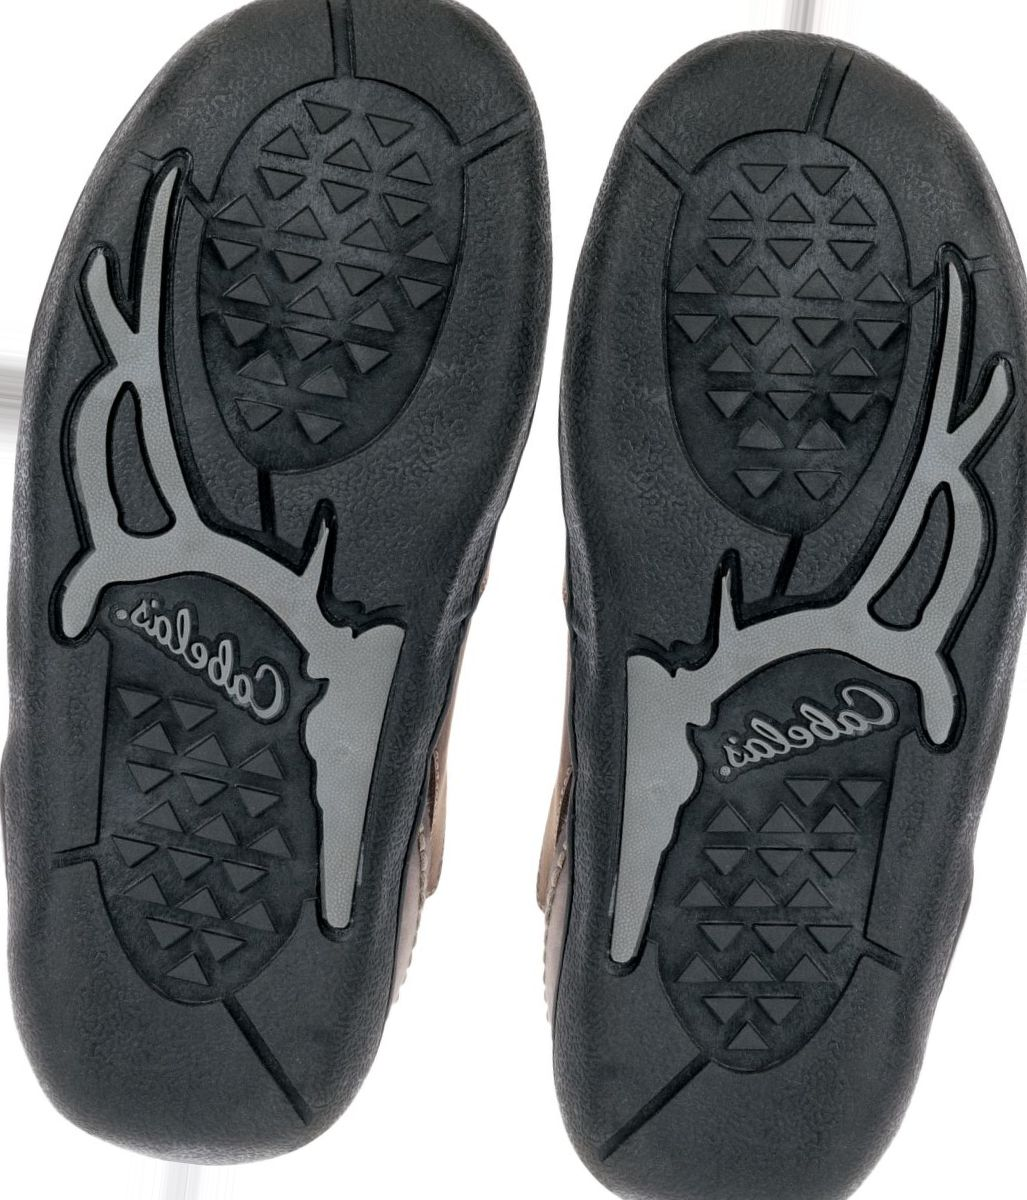 Cabela's Bomber Leather Shearling Slippers